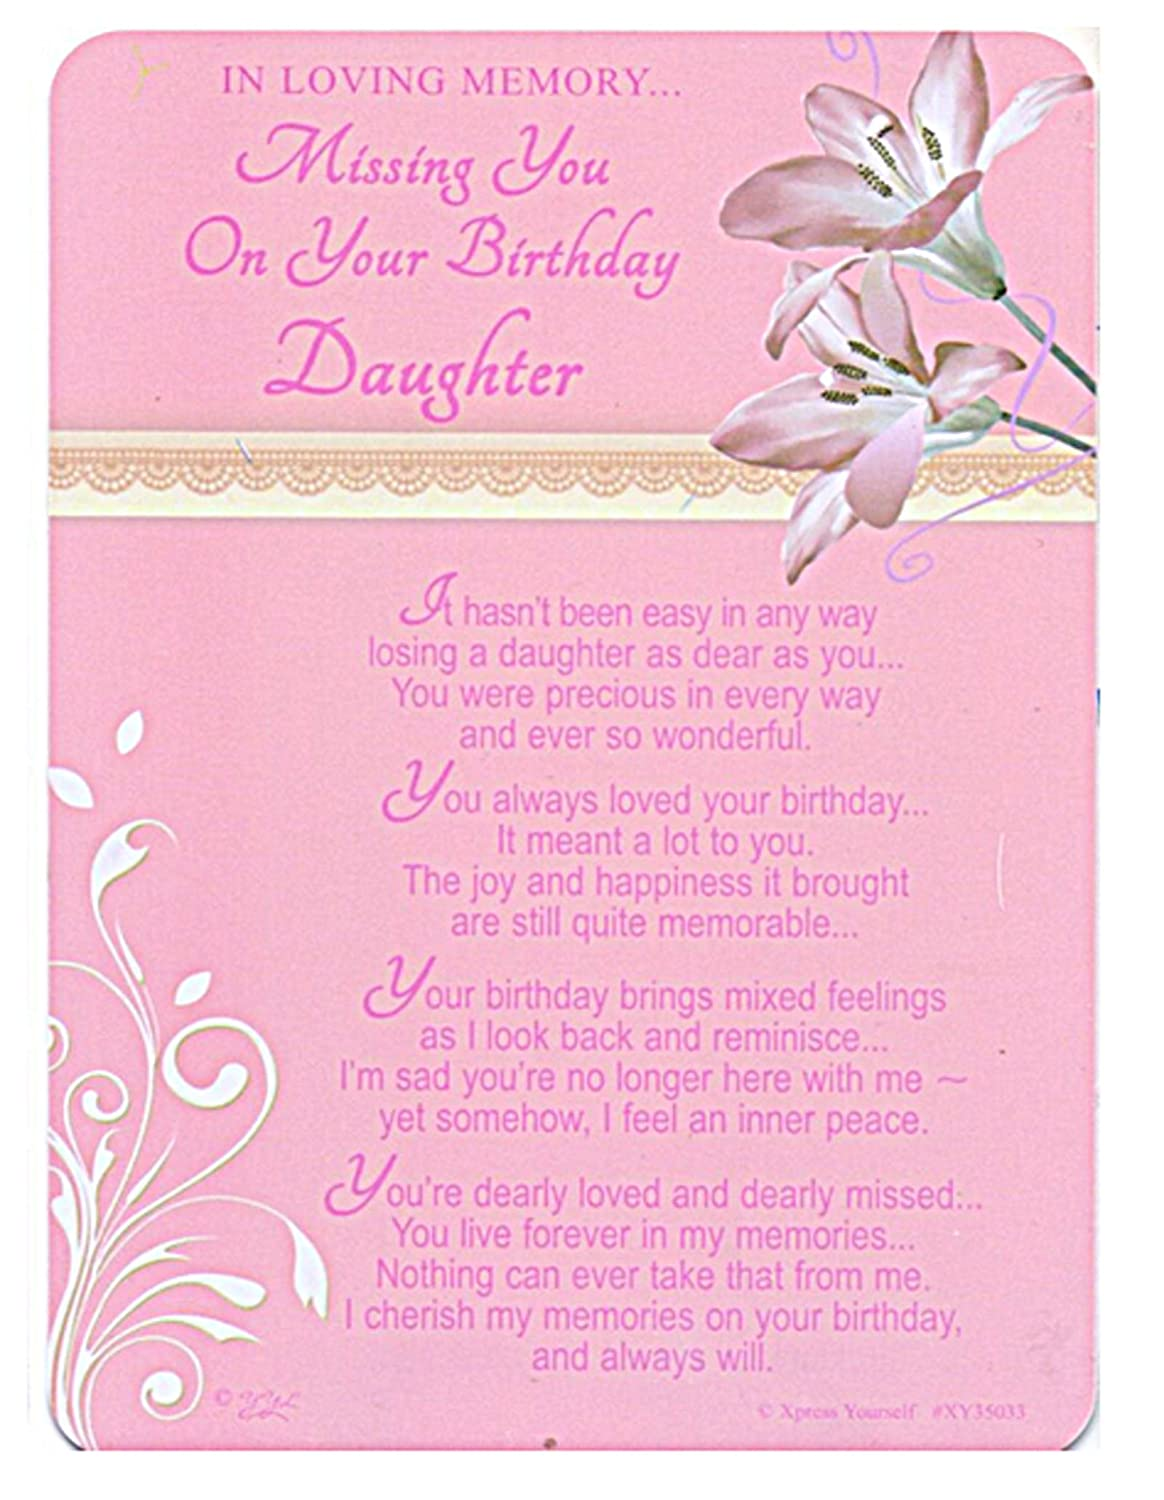 Grave//Graveside Memorial Card In Loving Memory Missing You On Your Birthday Daughter